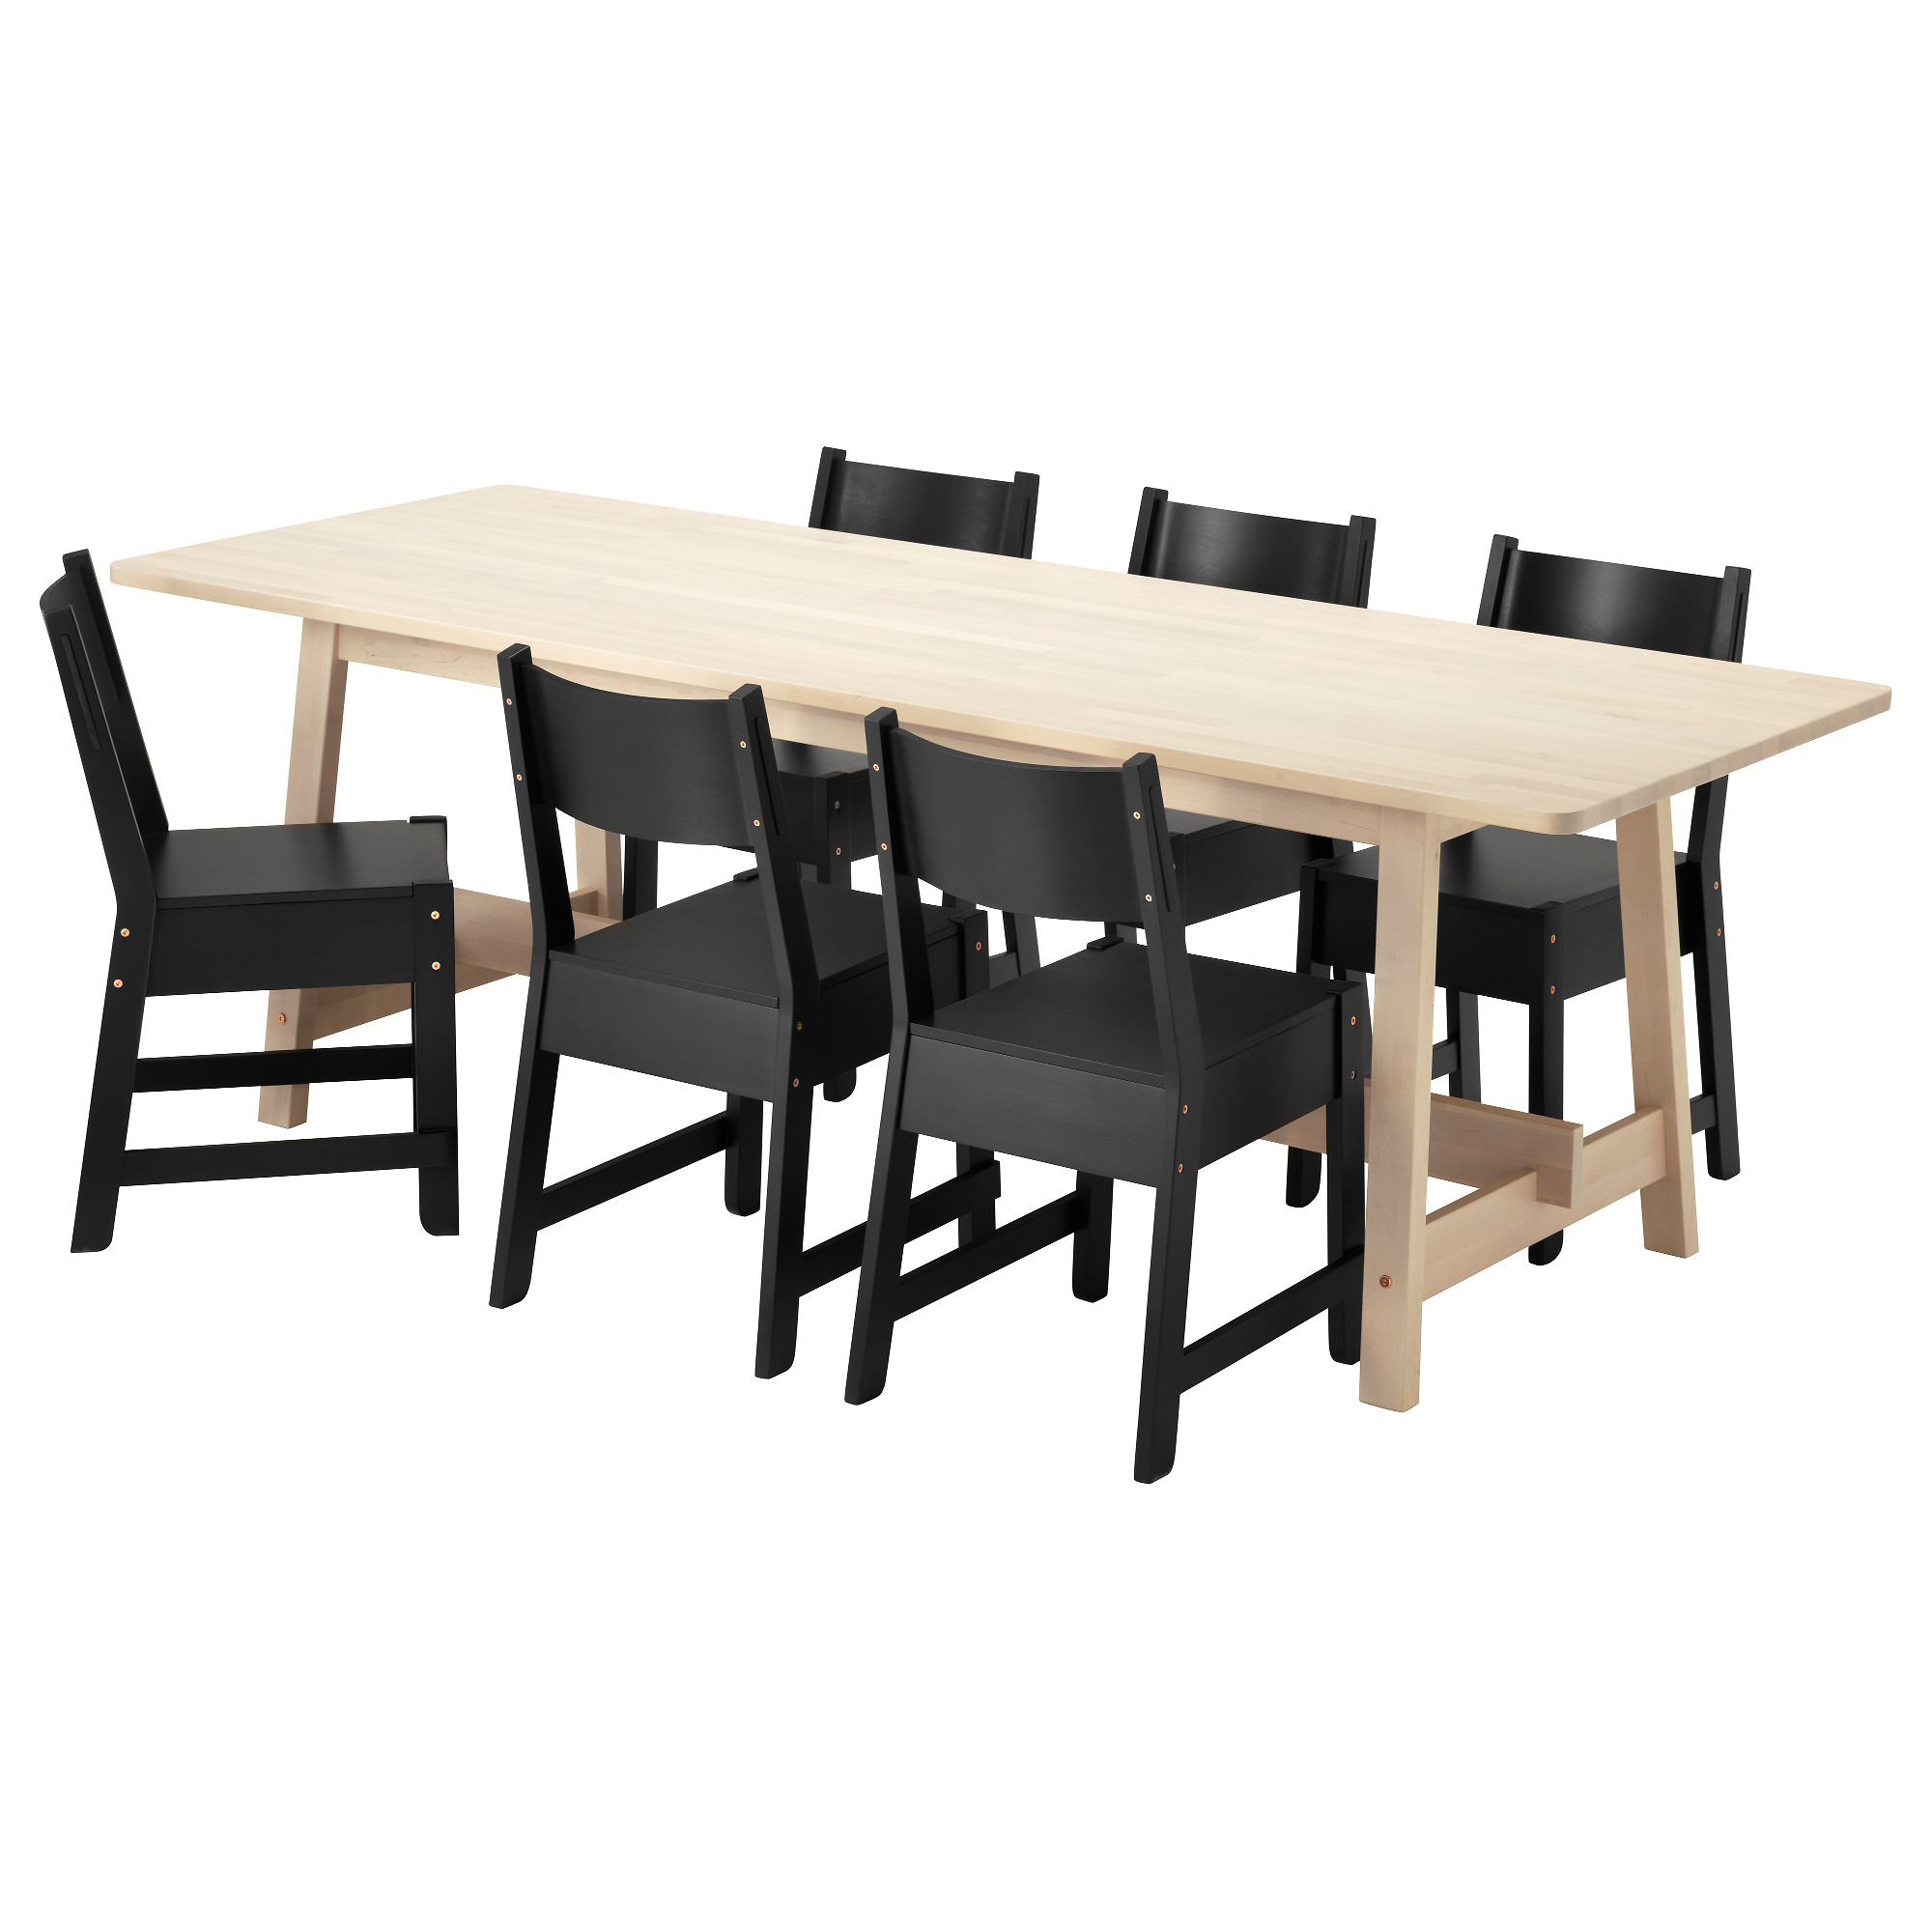 Black and white dining room sets - Norr Ker Norr Ker Table And 6 Chairs White Birch Black Length 86 5